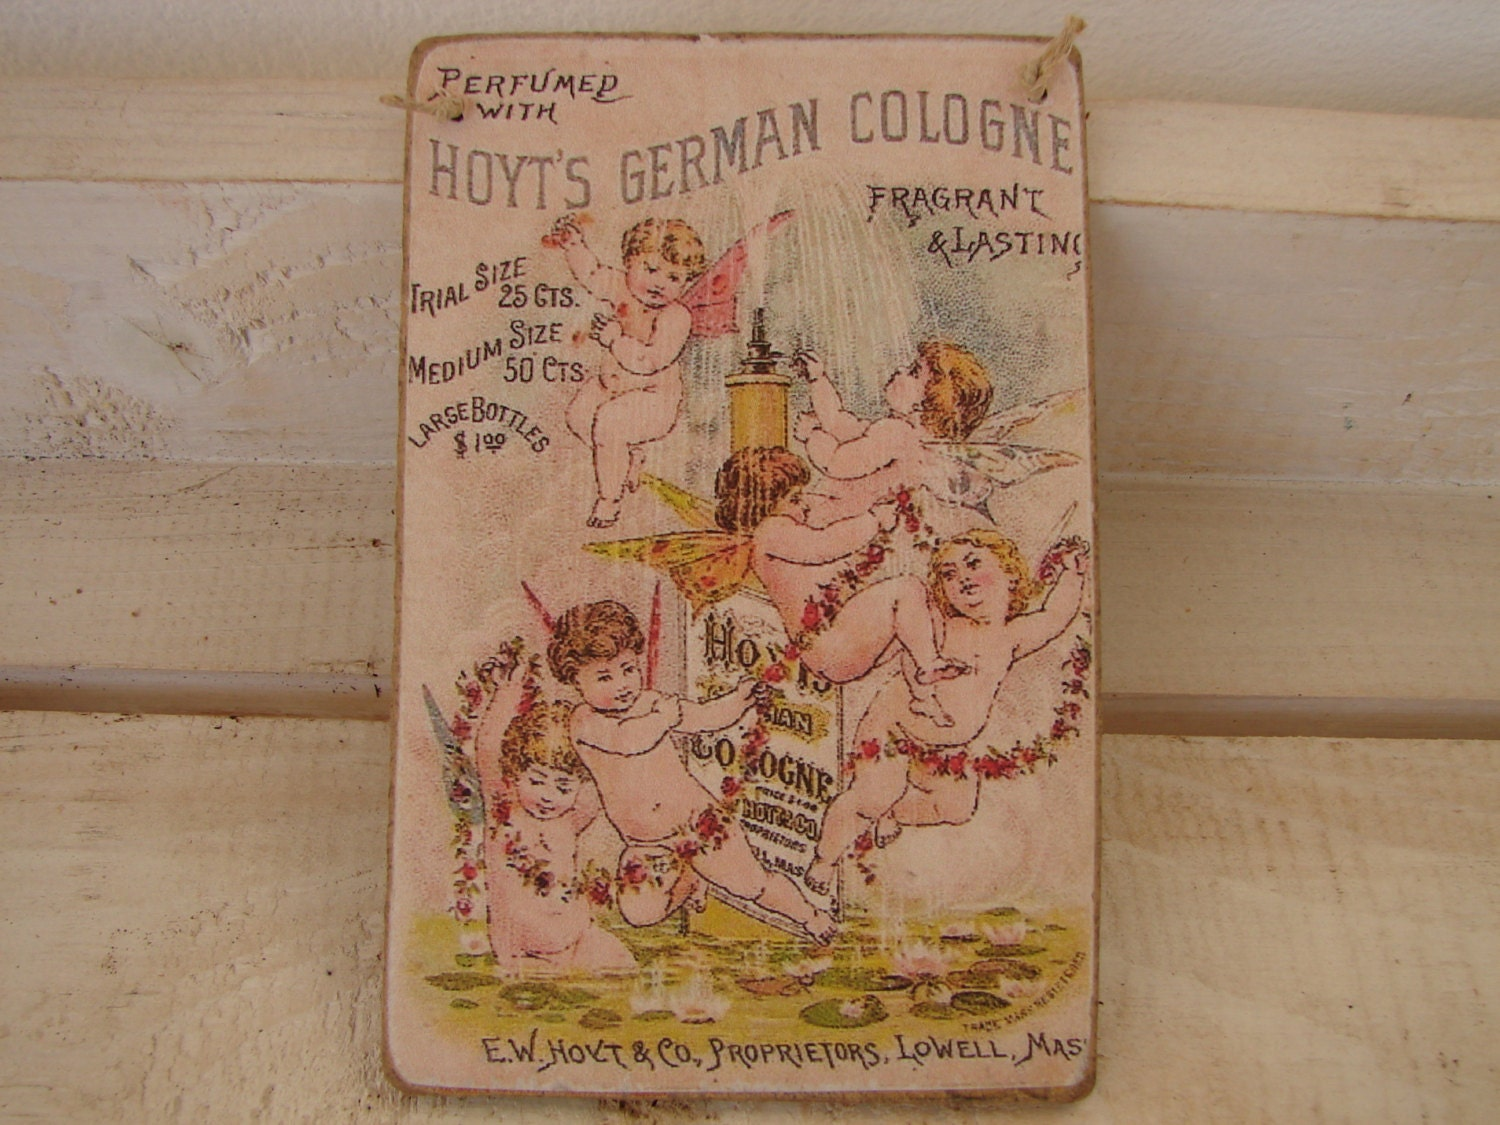 vintage cologne advertising hoyts german cologne cherubs. Black Bedroom Furniture Sets. Home Design Ideas